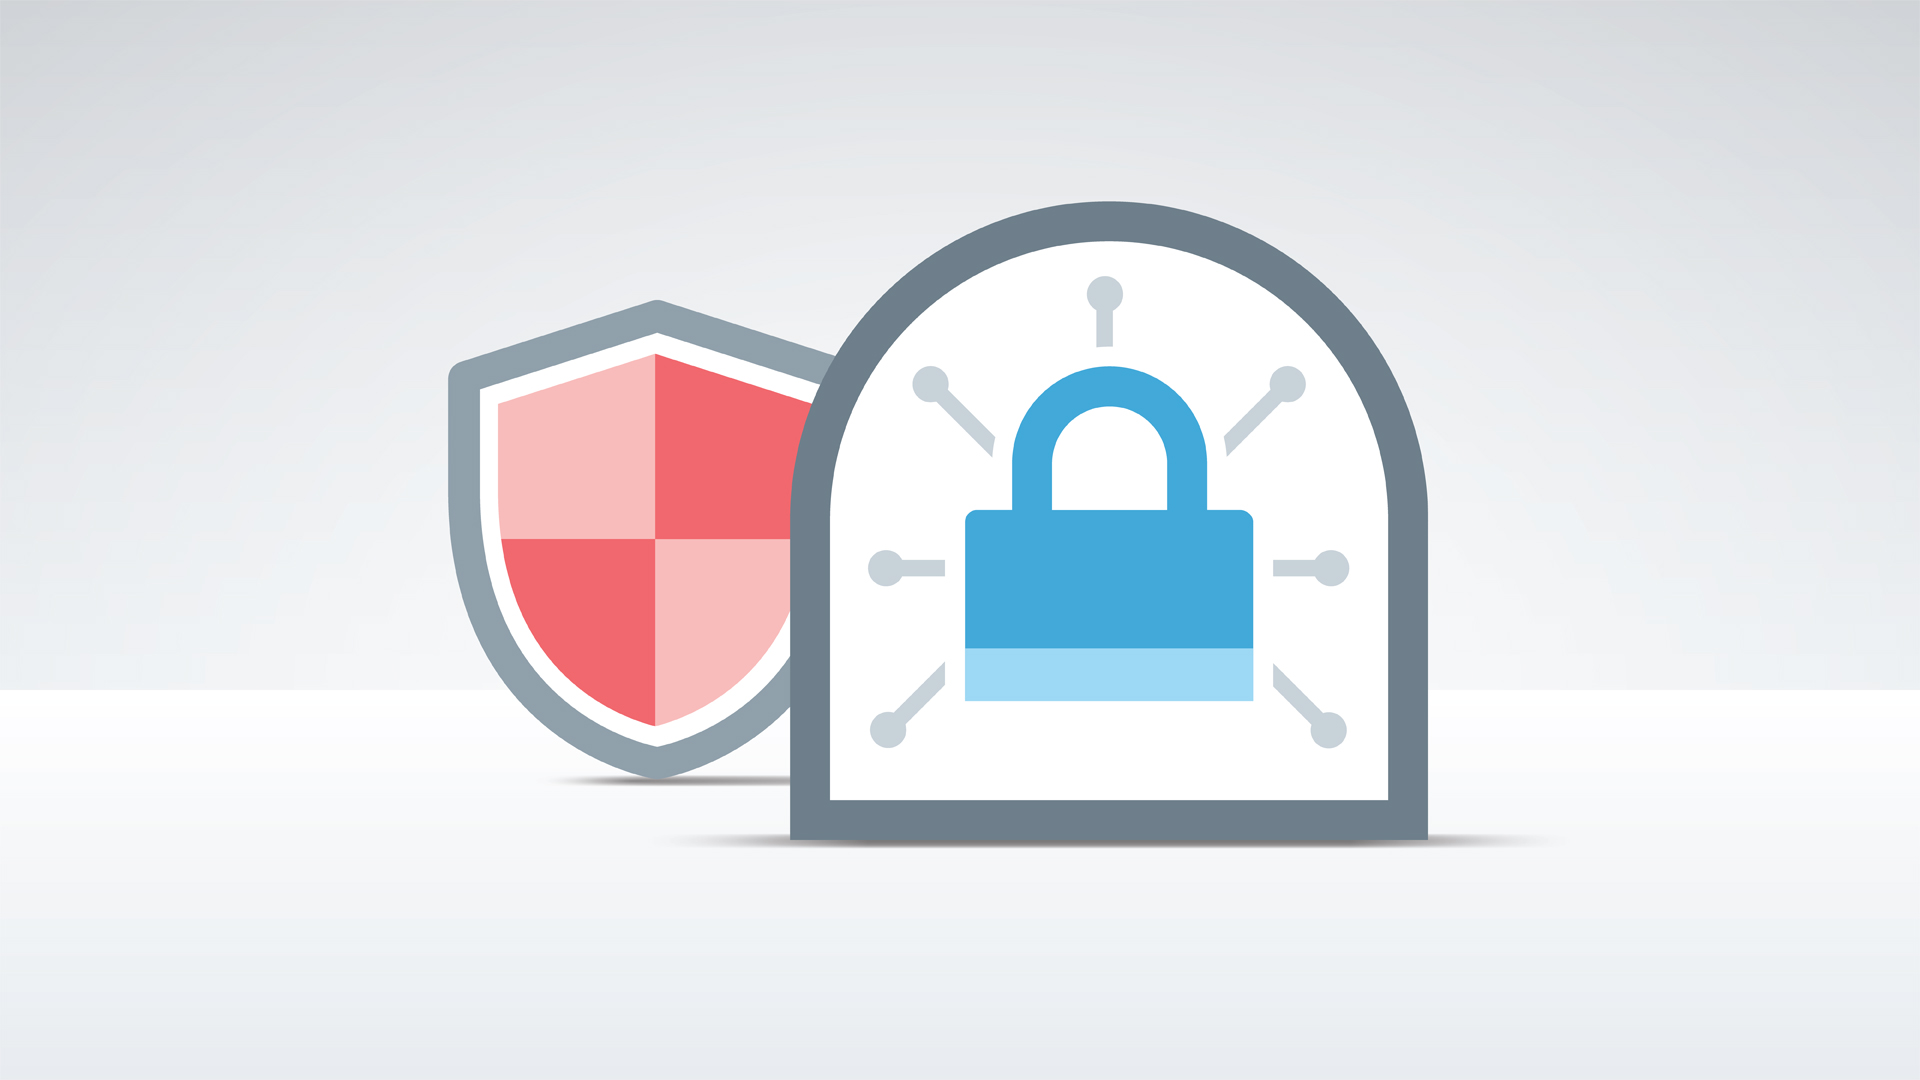 Firewall rule management: CompTIA Security+ Exam Prep (SY0-401): Network Security